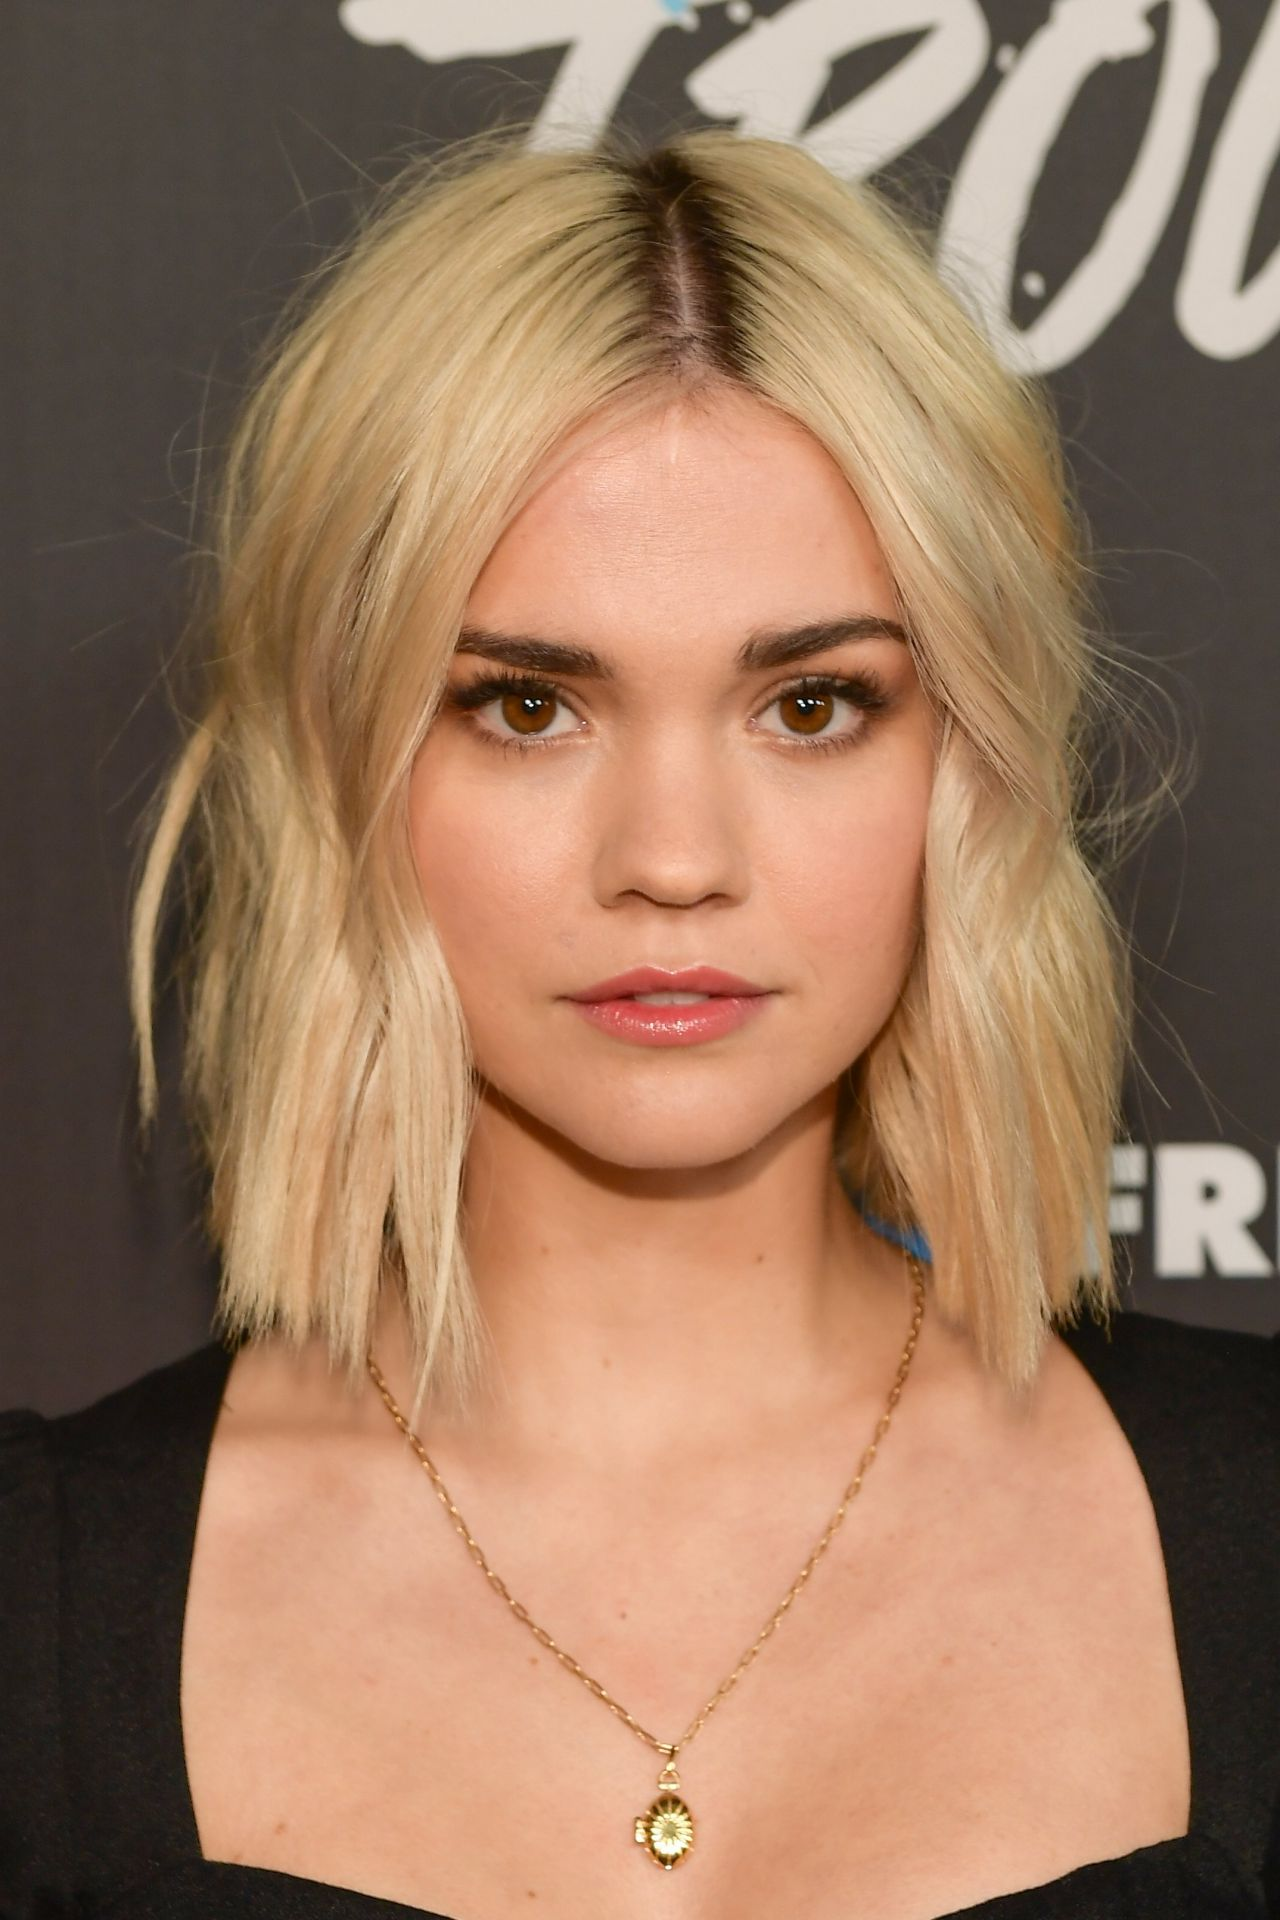 2019 Maia Mitchell naked (39 photos), Tits, Paparazzi, Twitter, cleavage 2018